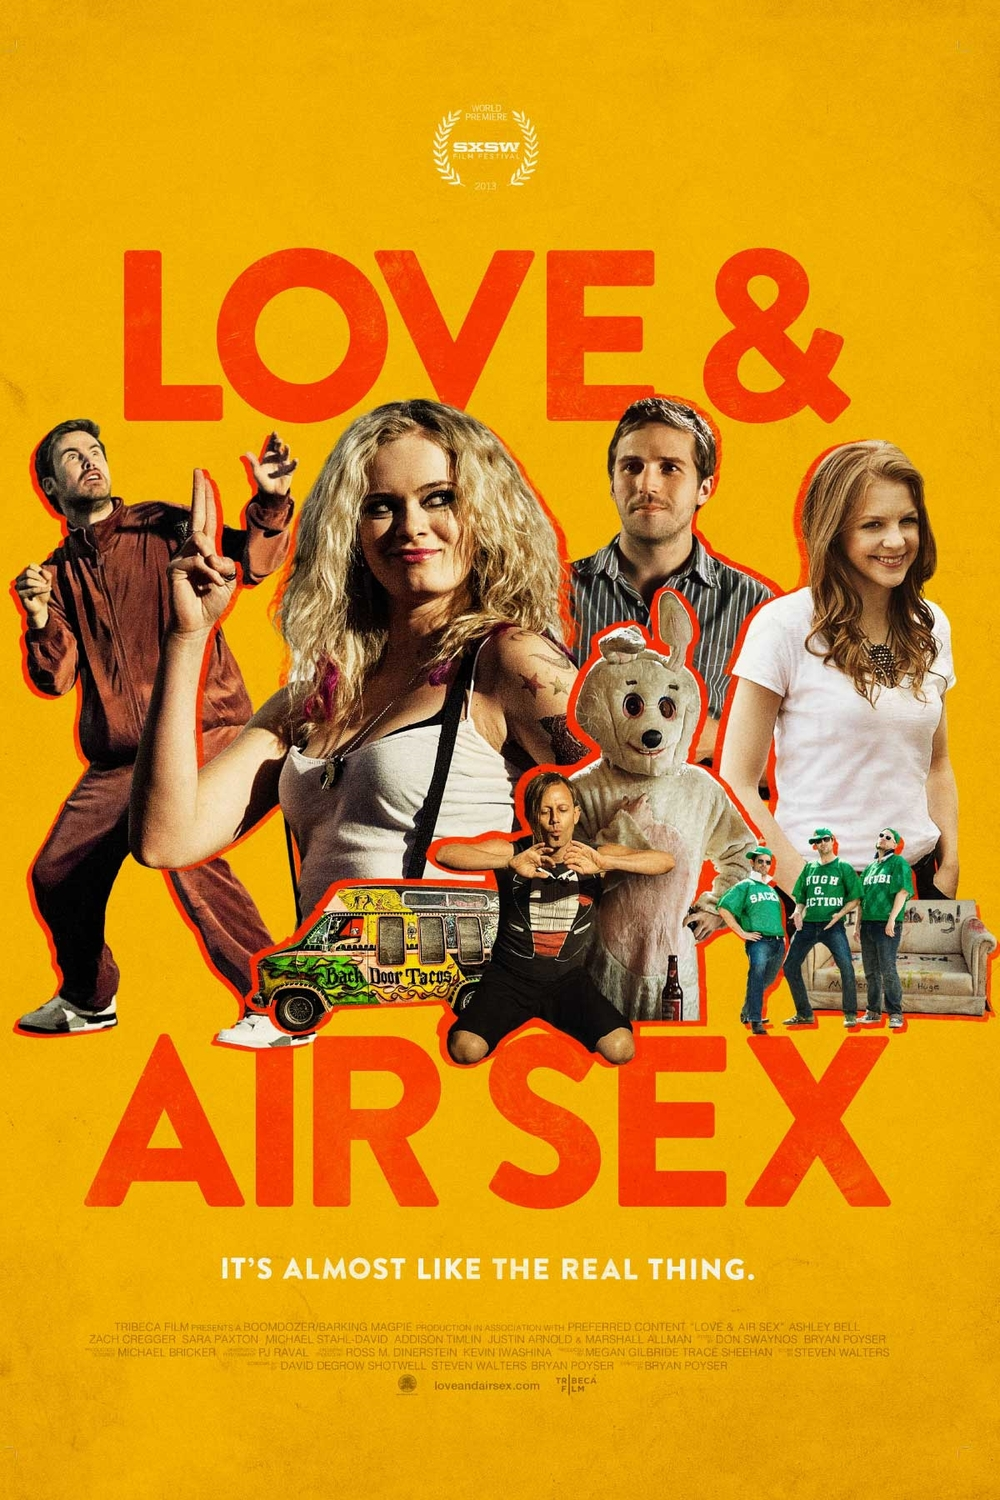 Love-&-Air-Sex-Postcard-Front.jpg